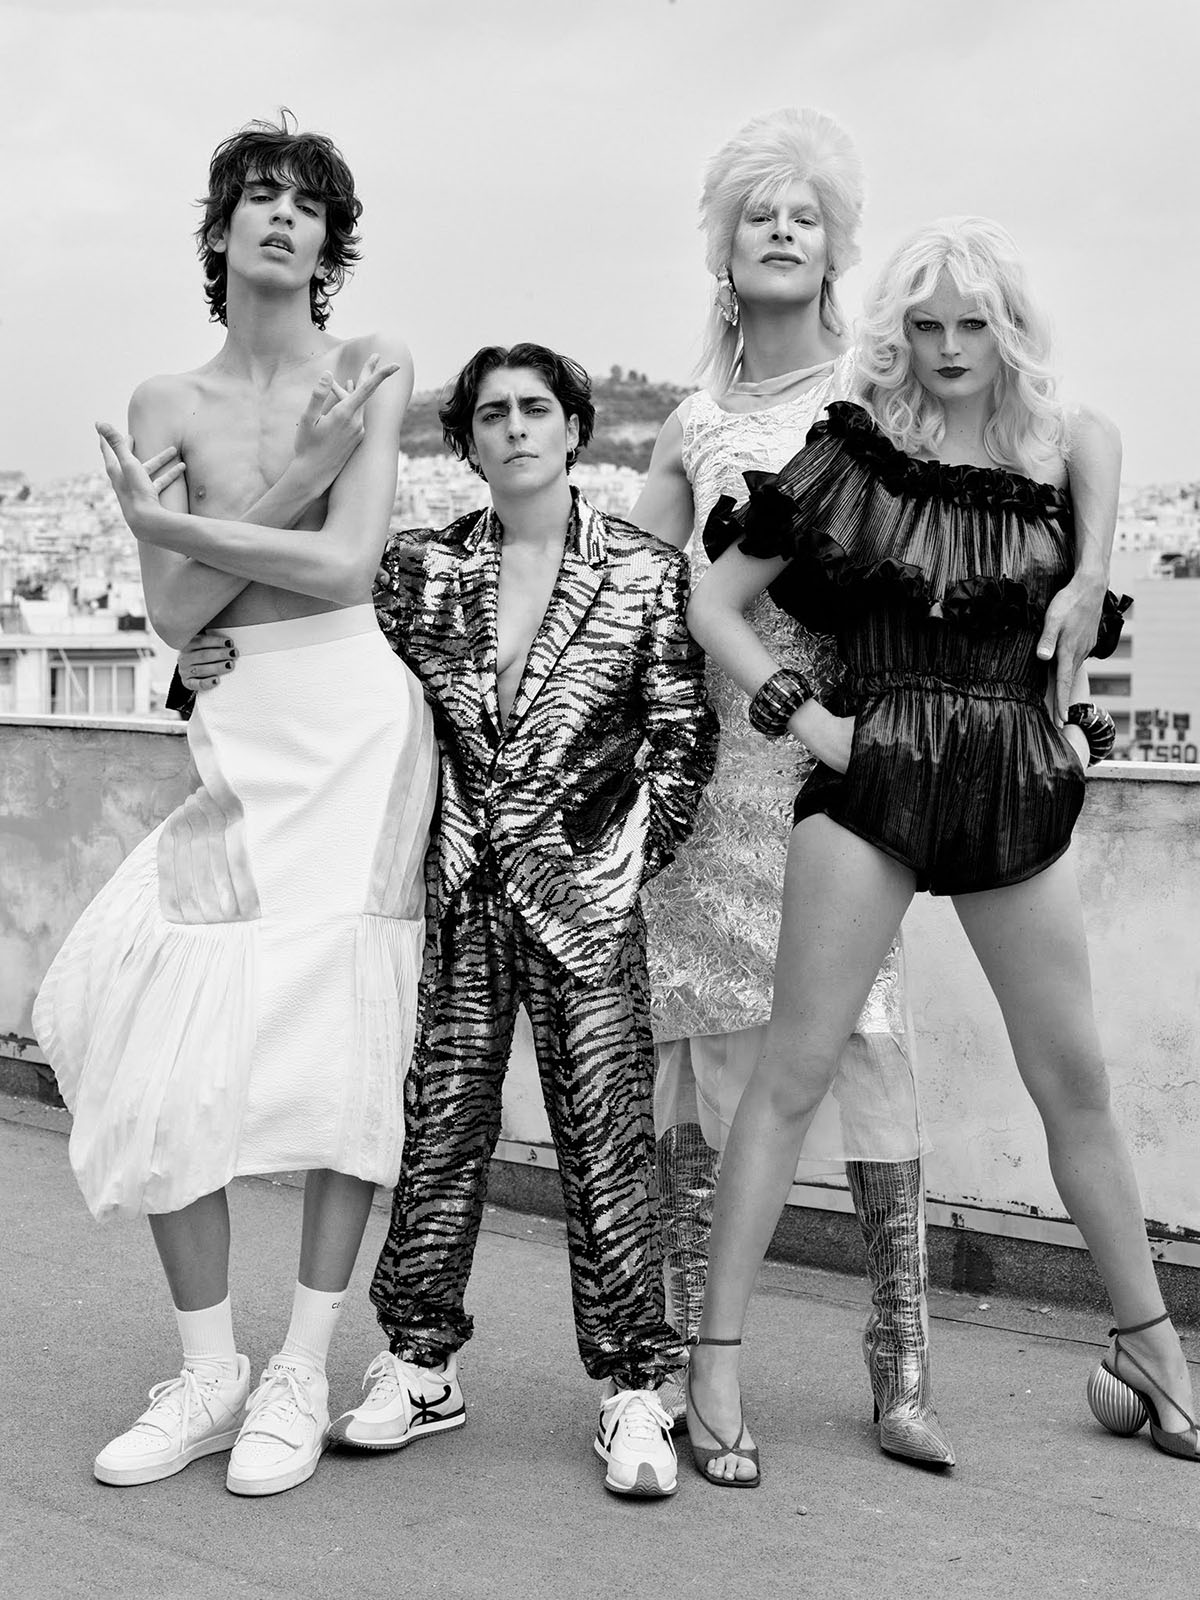 Hanne Gaby Odiele and Checking Invoices cover Vogue Greece June 2021 by Phil Poynter